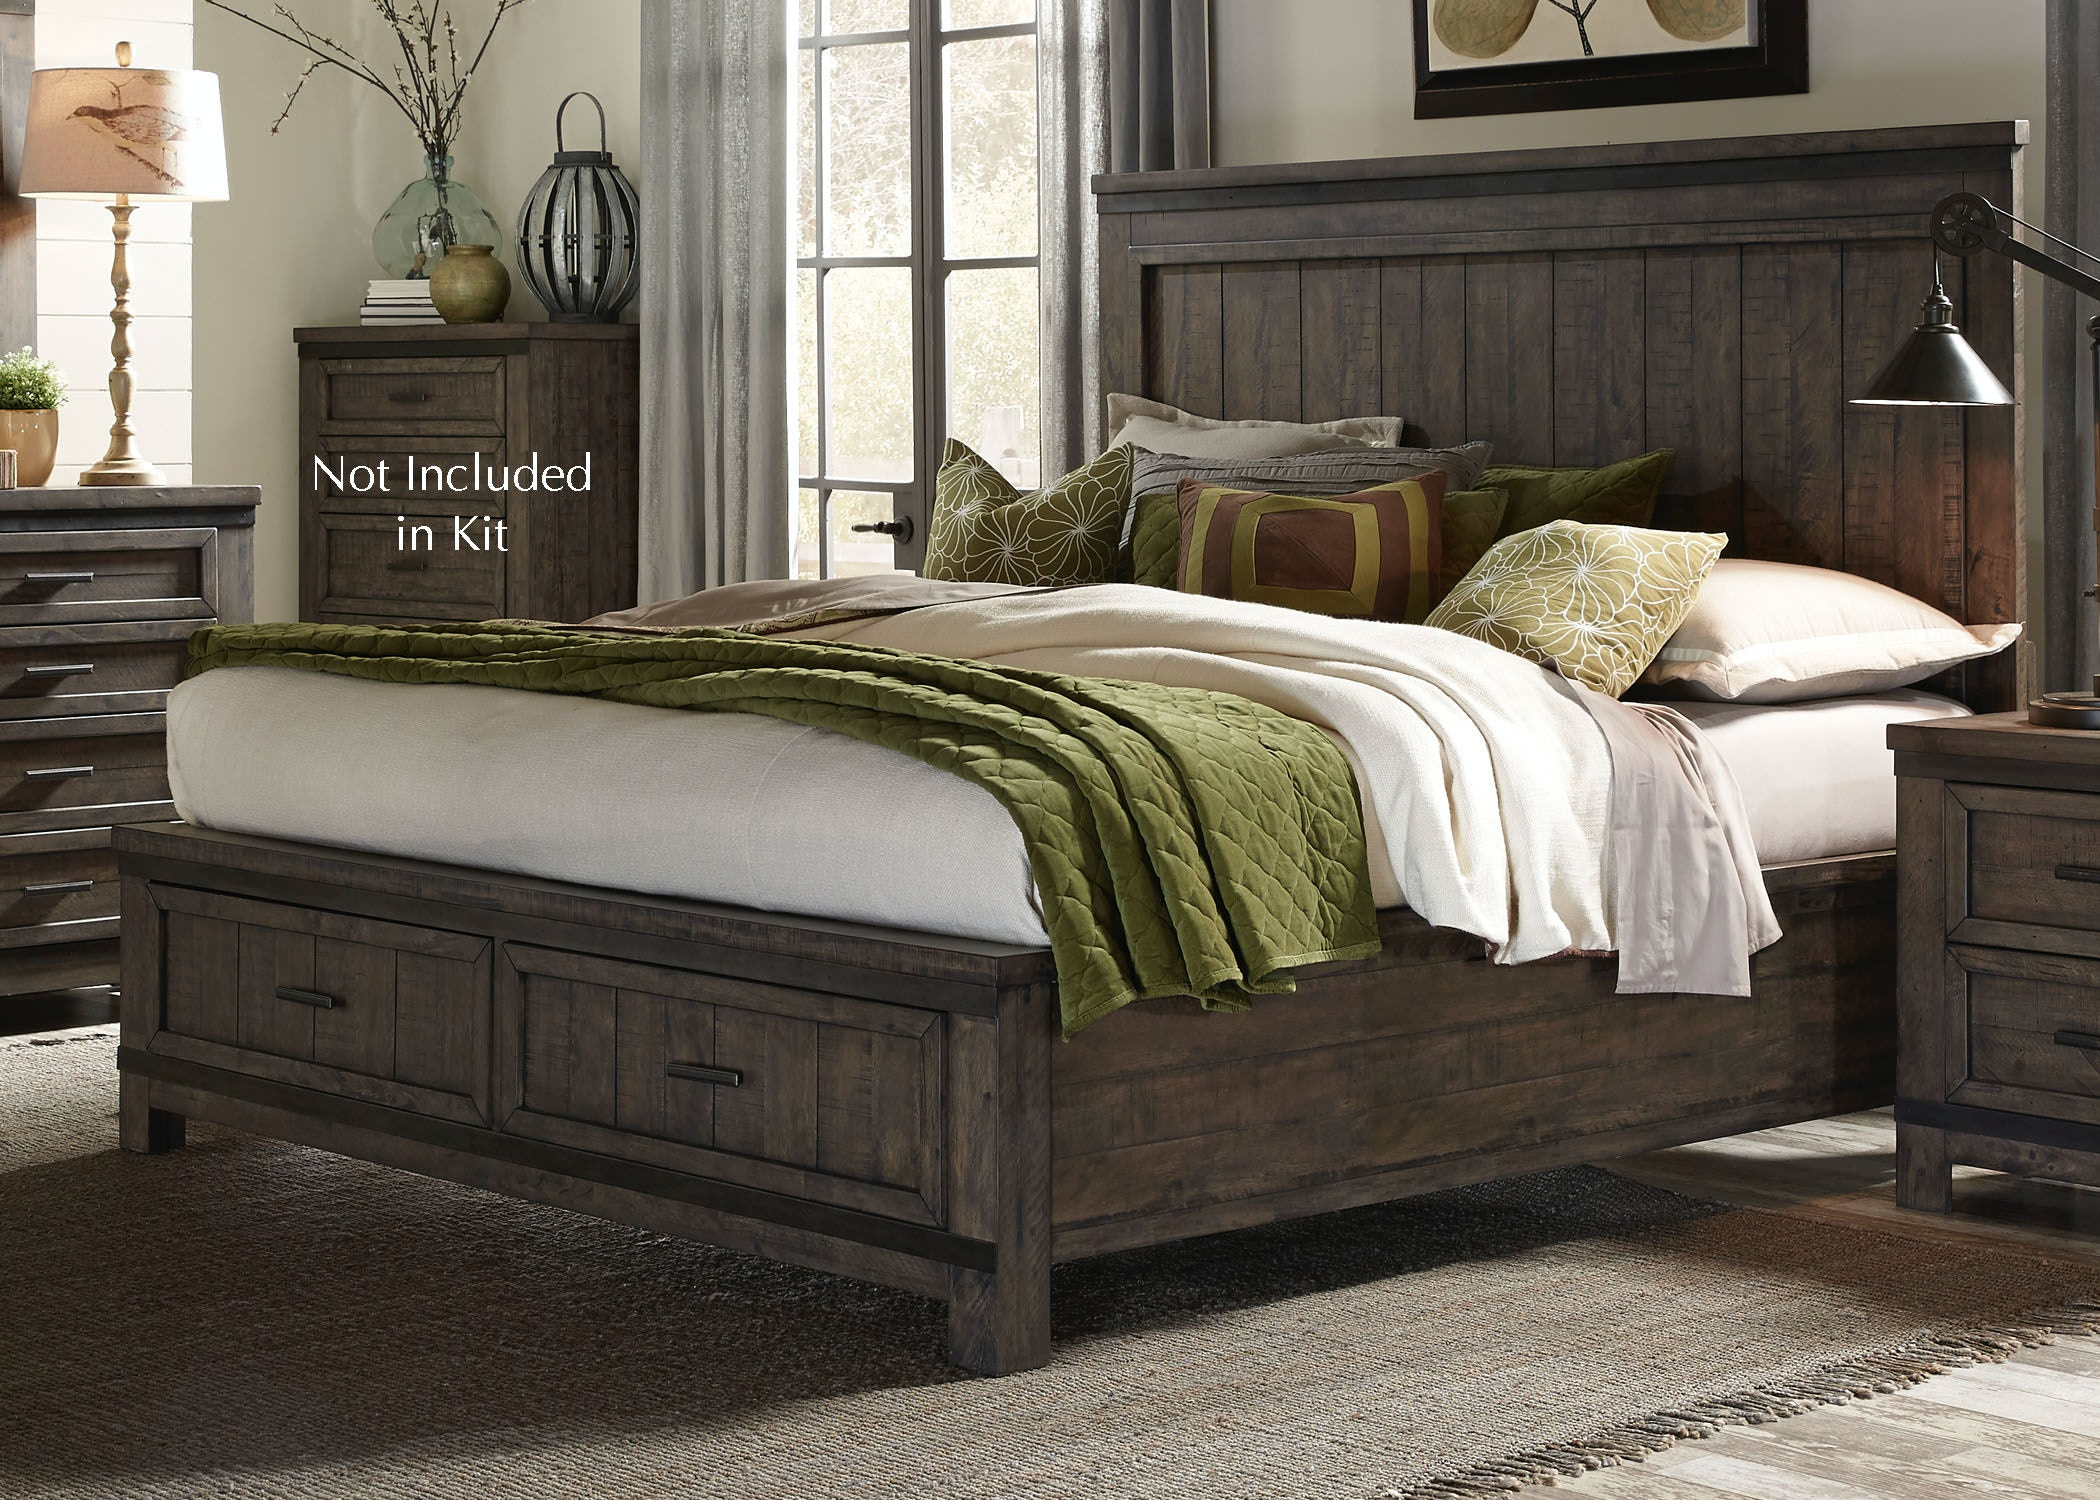 liberty bedroom furniture liberty furniture bedroom storage bed 759 br qsb 12082